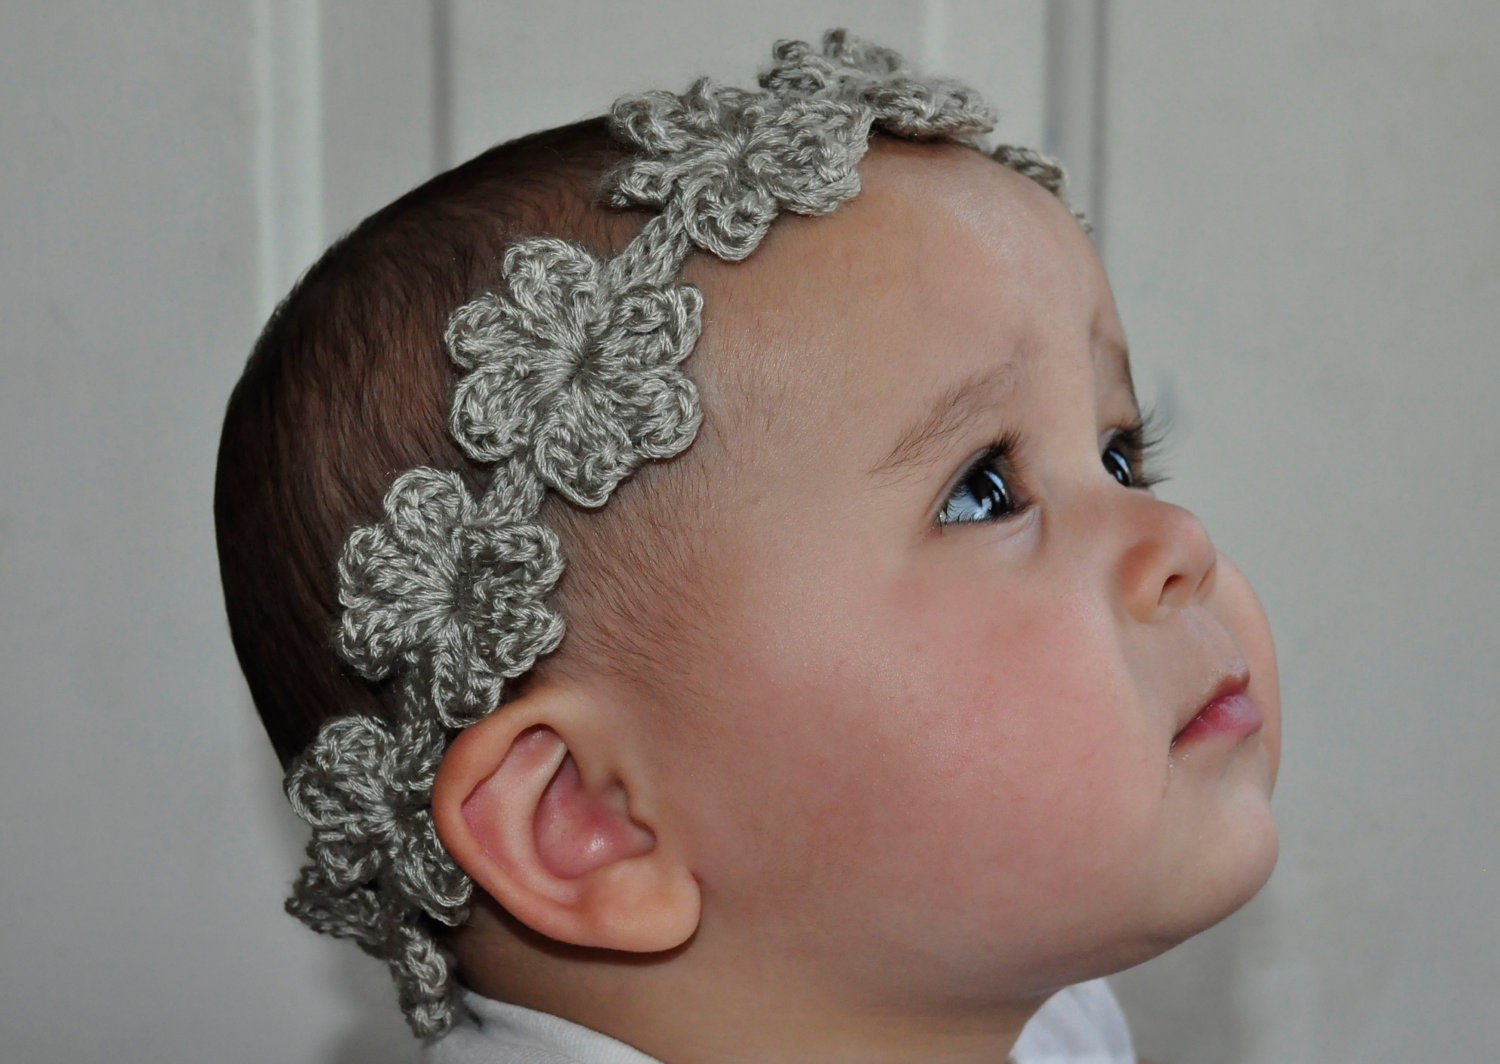 Crochet Pattern For A Flower Headband : Crochet Pattern PDF Headband / Bracelet Flower Garland